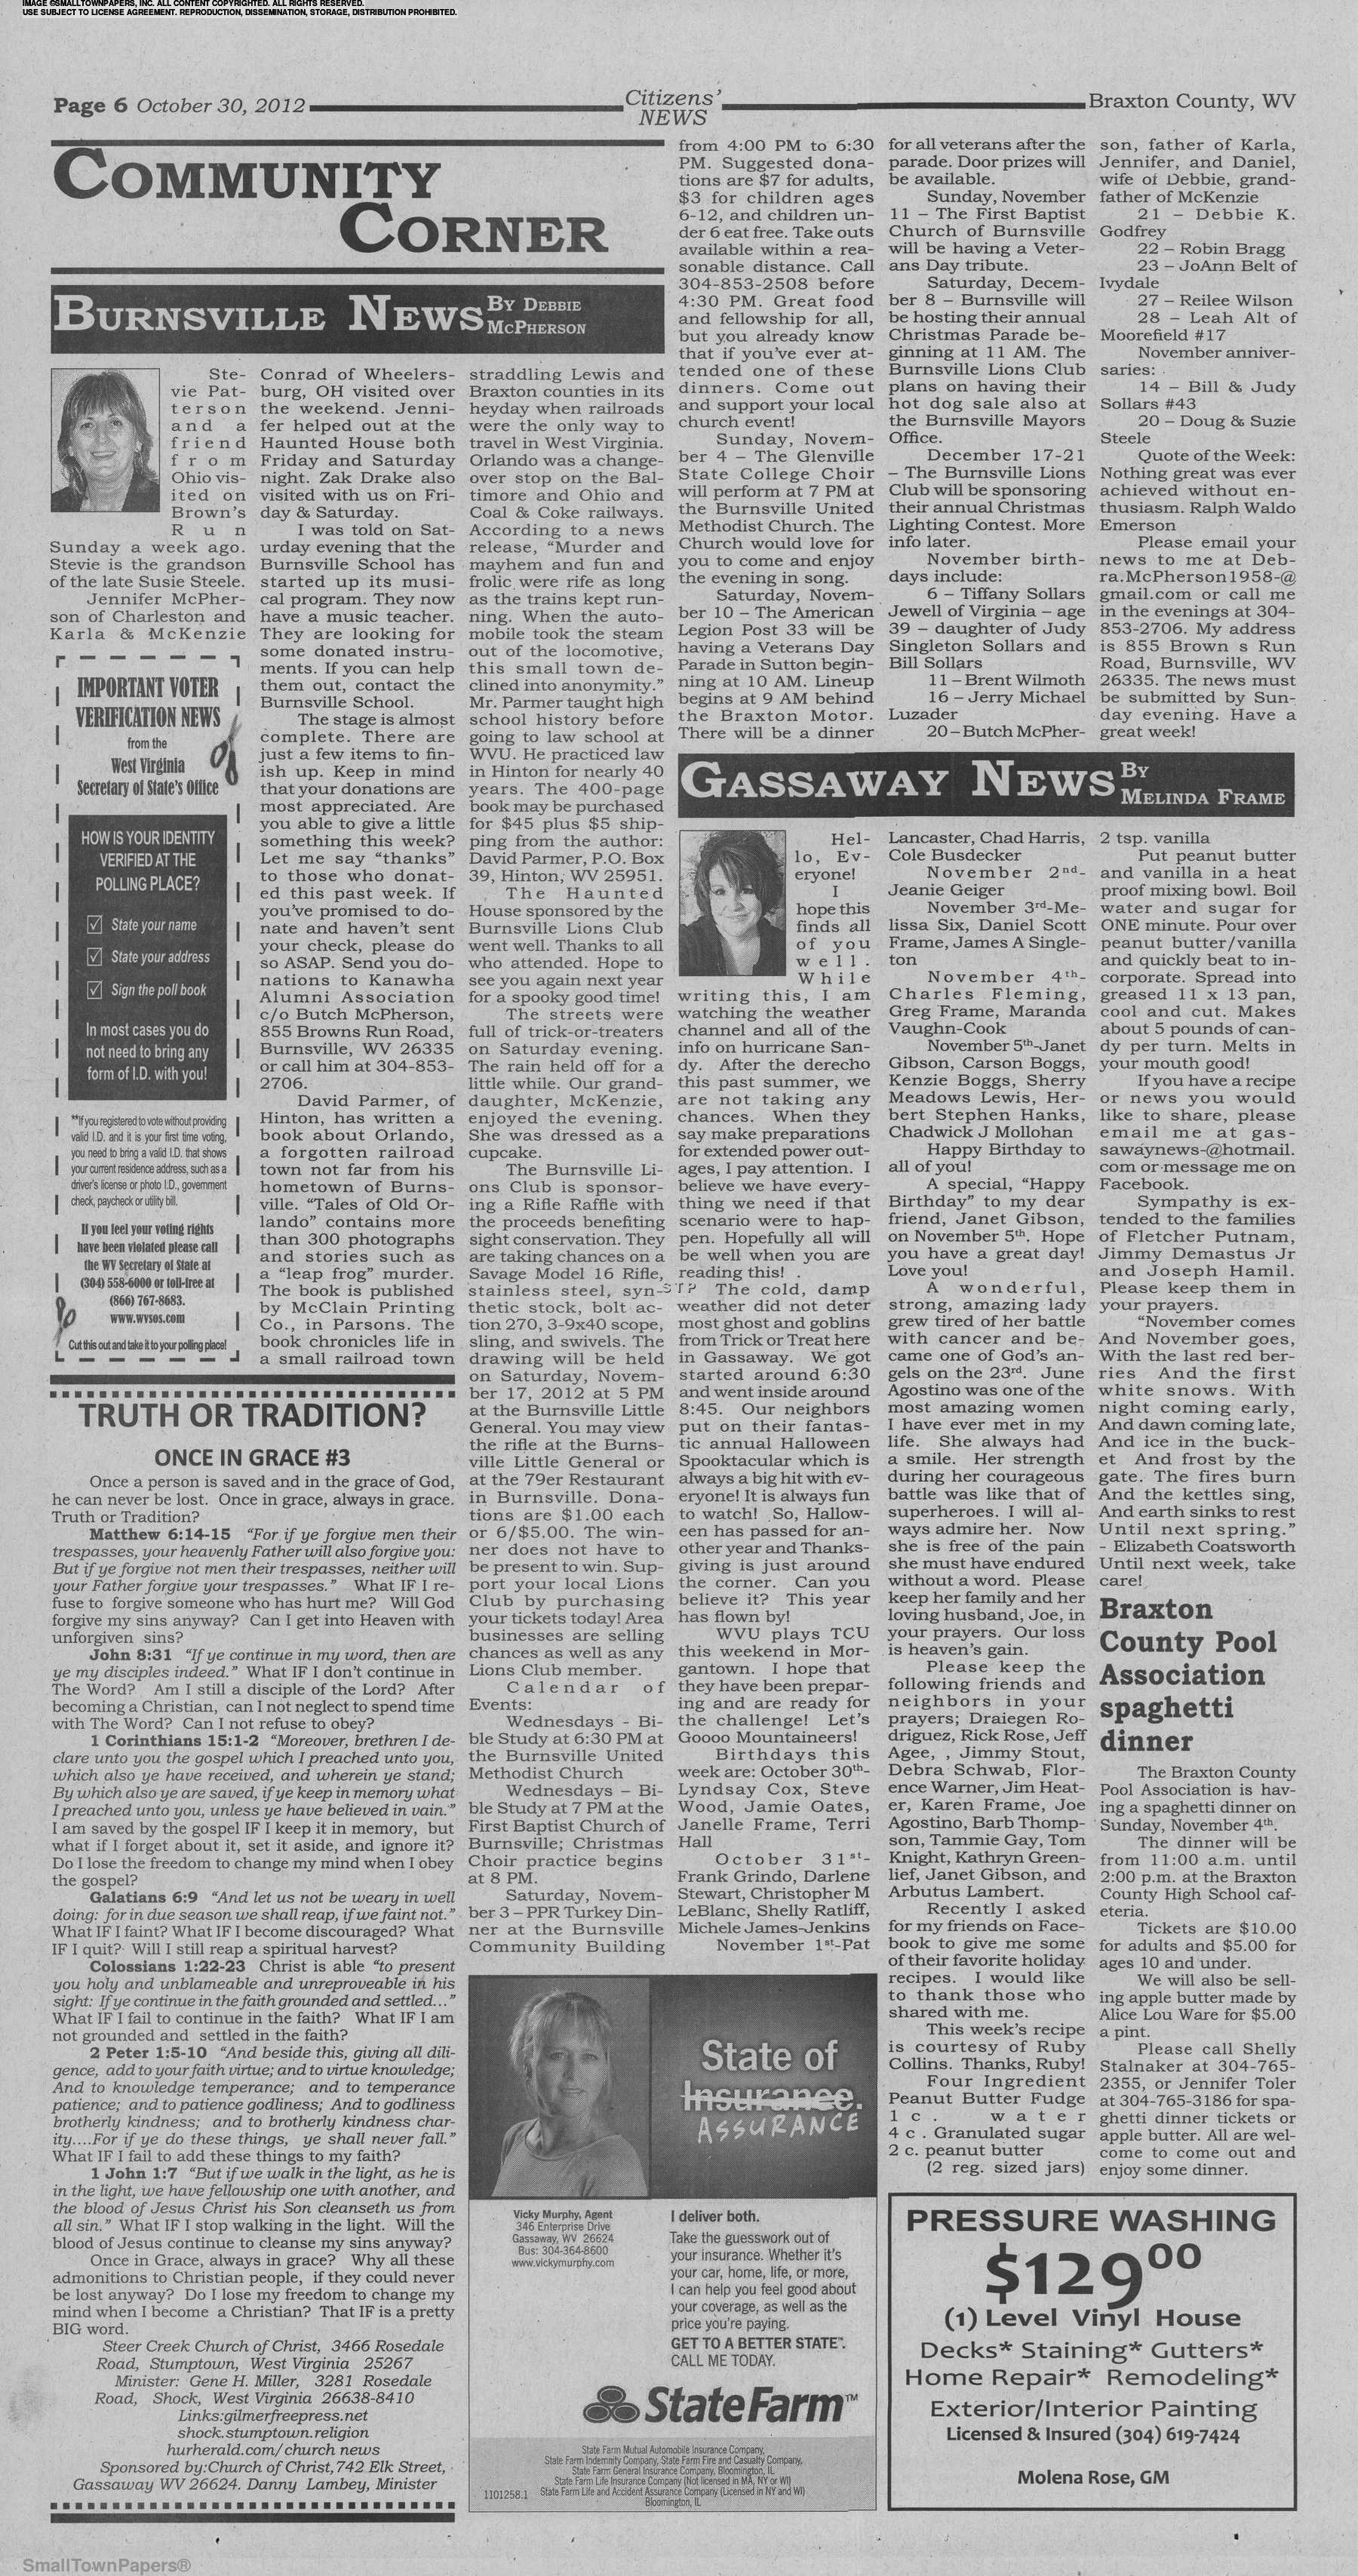 Gassaway Wv Christmas Parade 2020 Braxton Citizens News October 30, 2012: Page 6